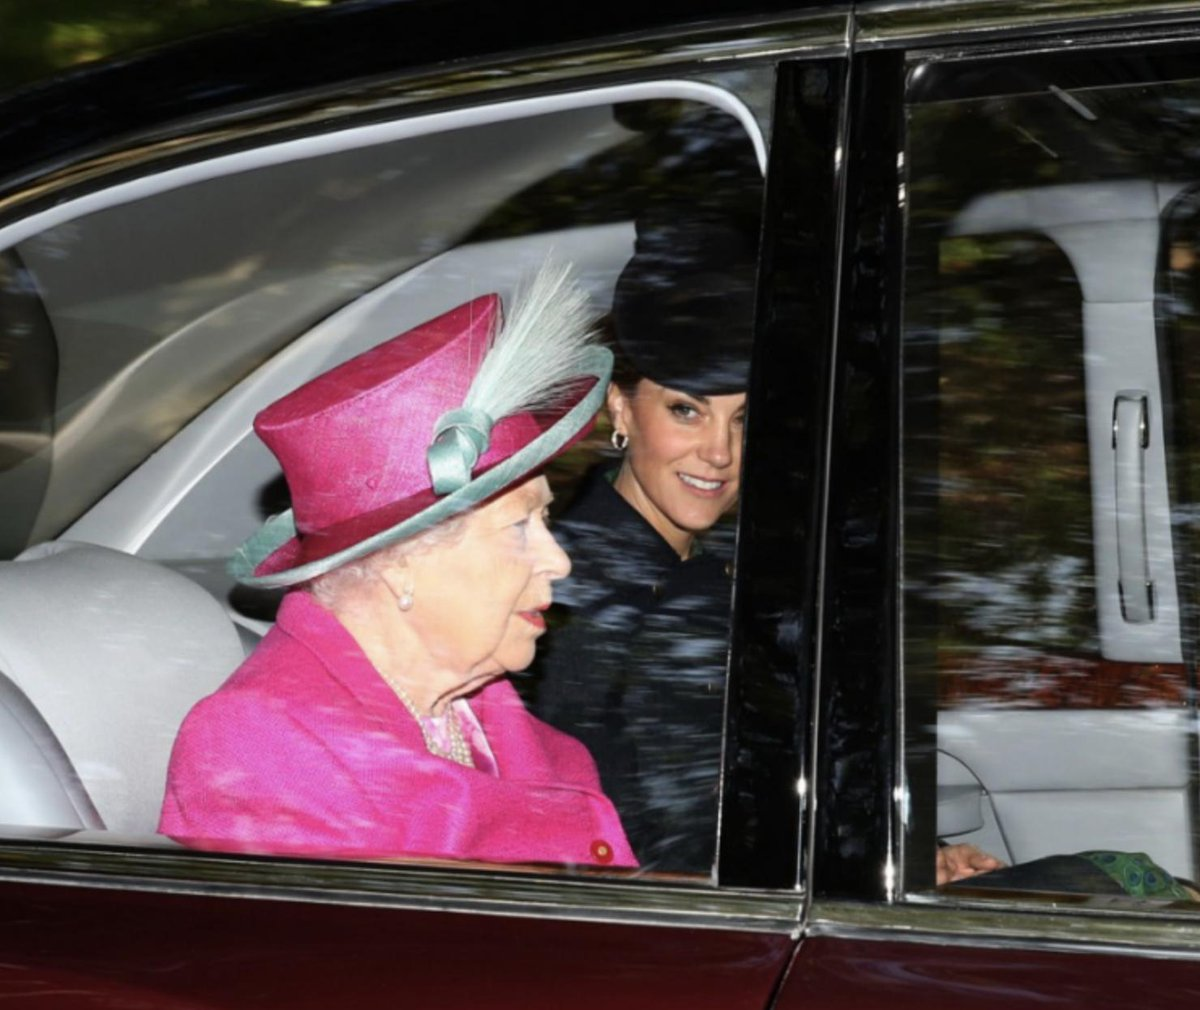 @PA Queen Elizabeth II alongside Duchess of Cambridge arrive at Crathie Kirk for the Sunday church service near Balmoral @PA